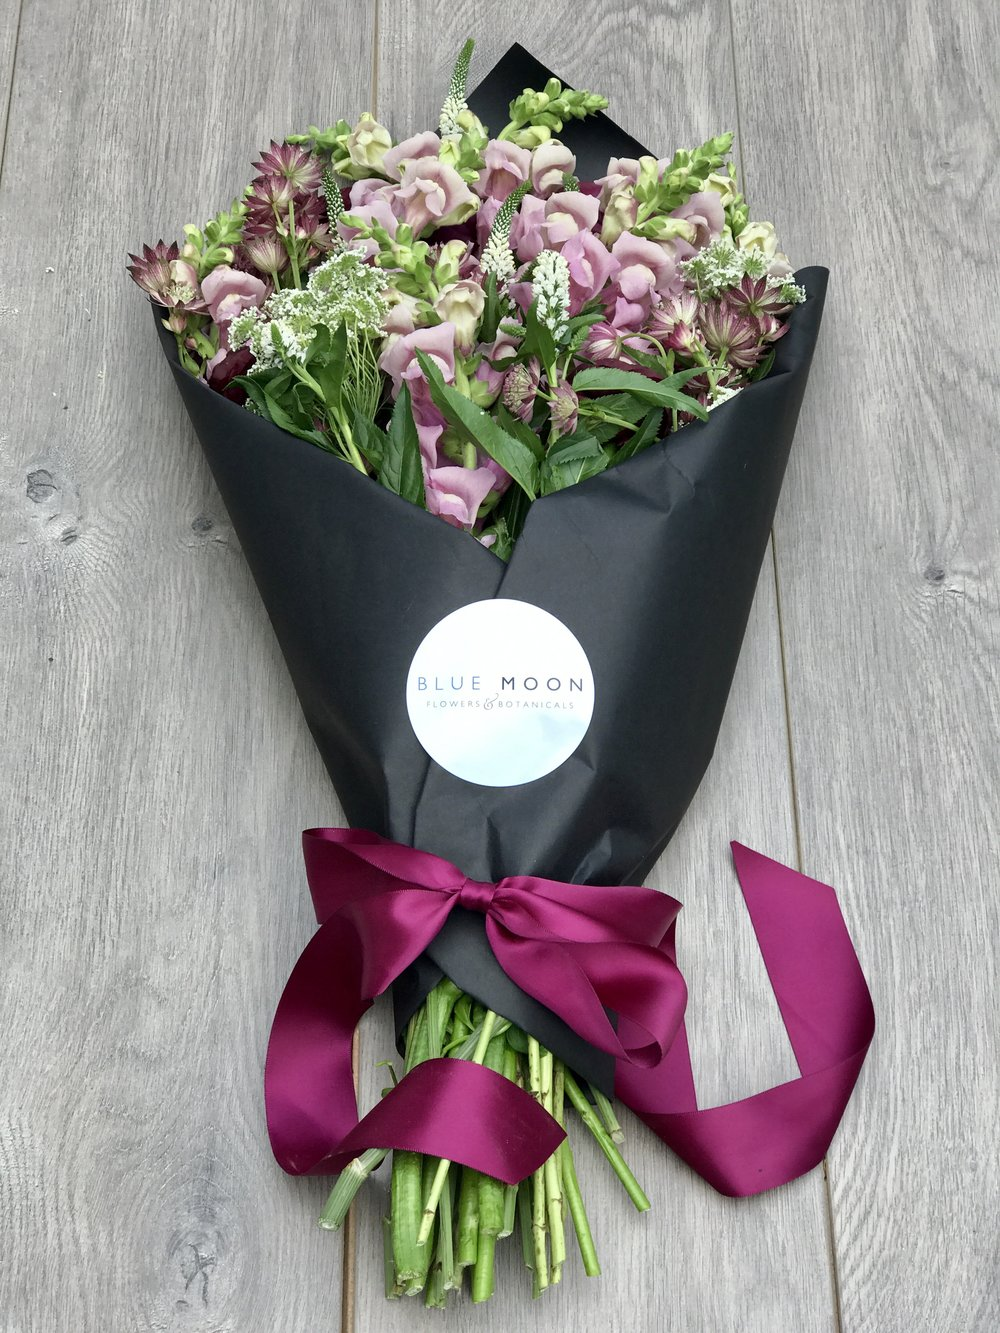 Locally Grown Flower Bouquets Make Great Gifts